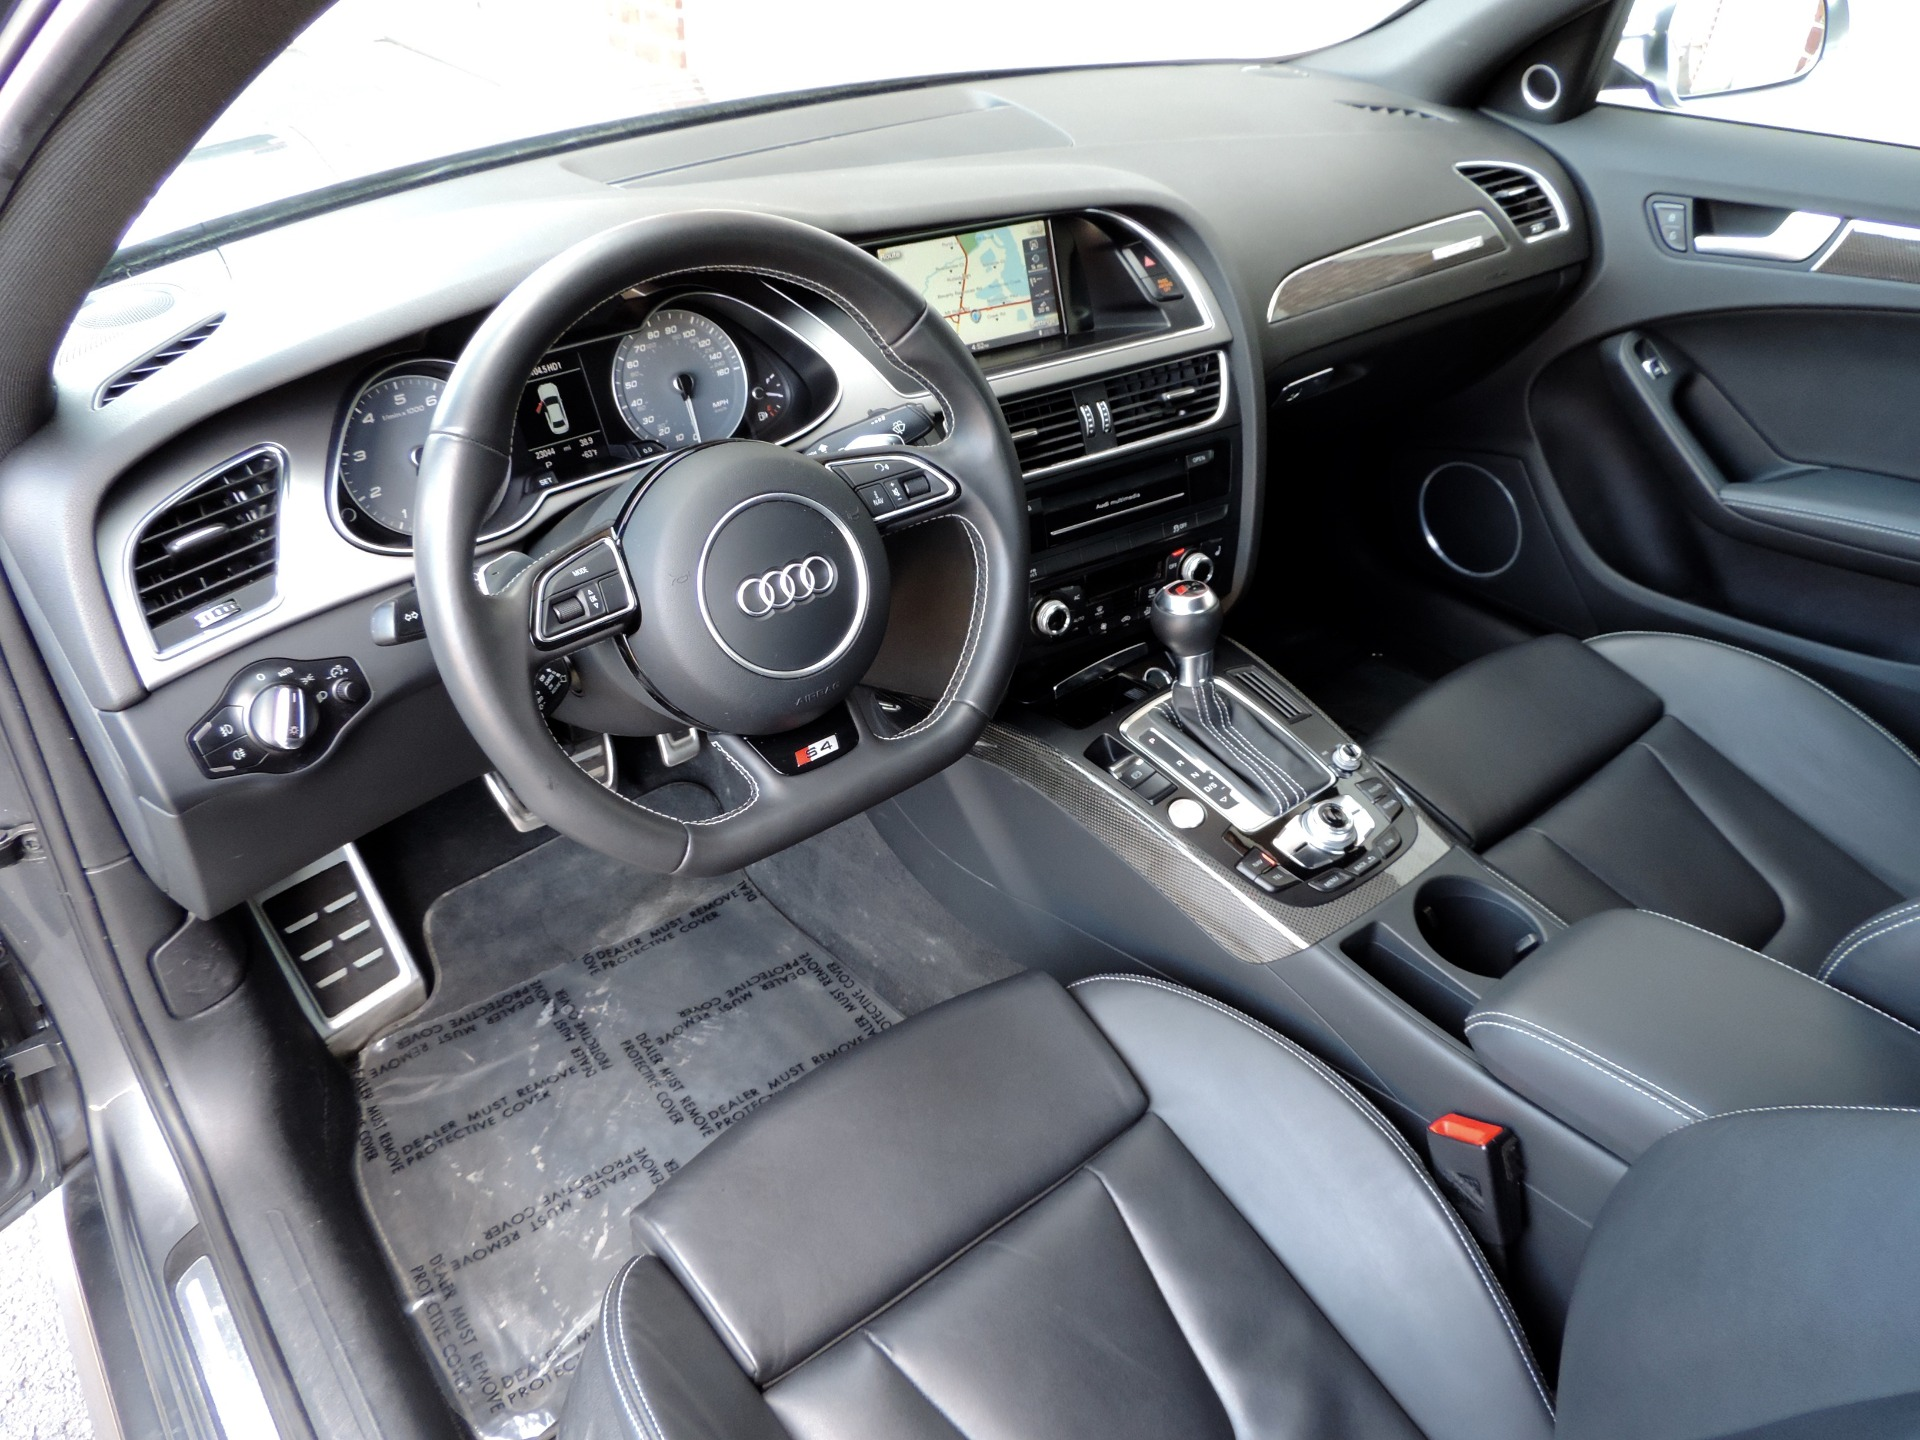 driver sale reviews review car wagon s for drive original avant and audi photo first